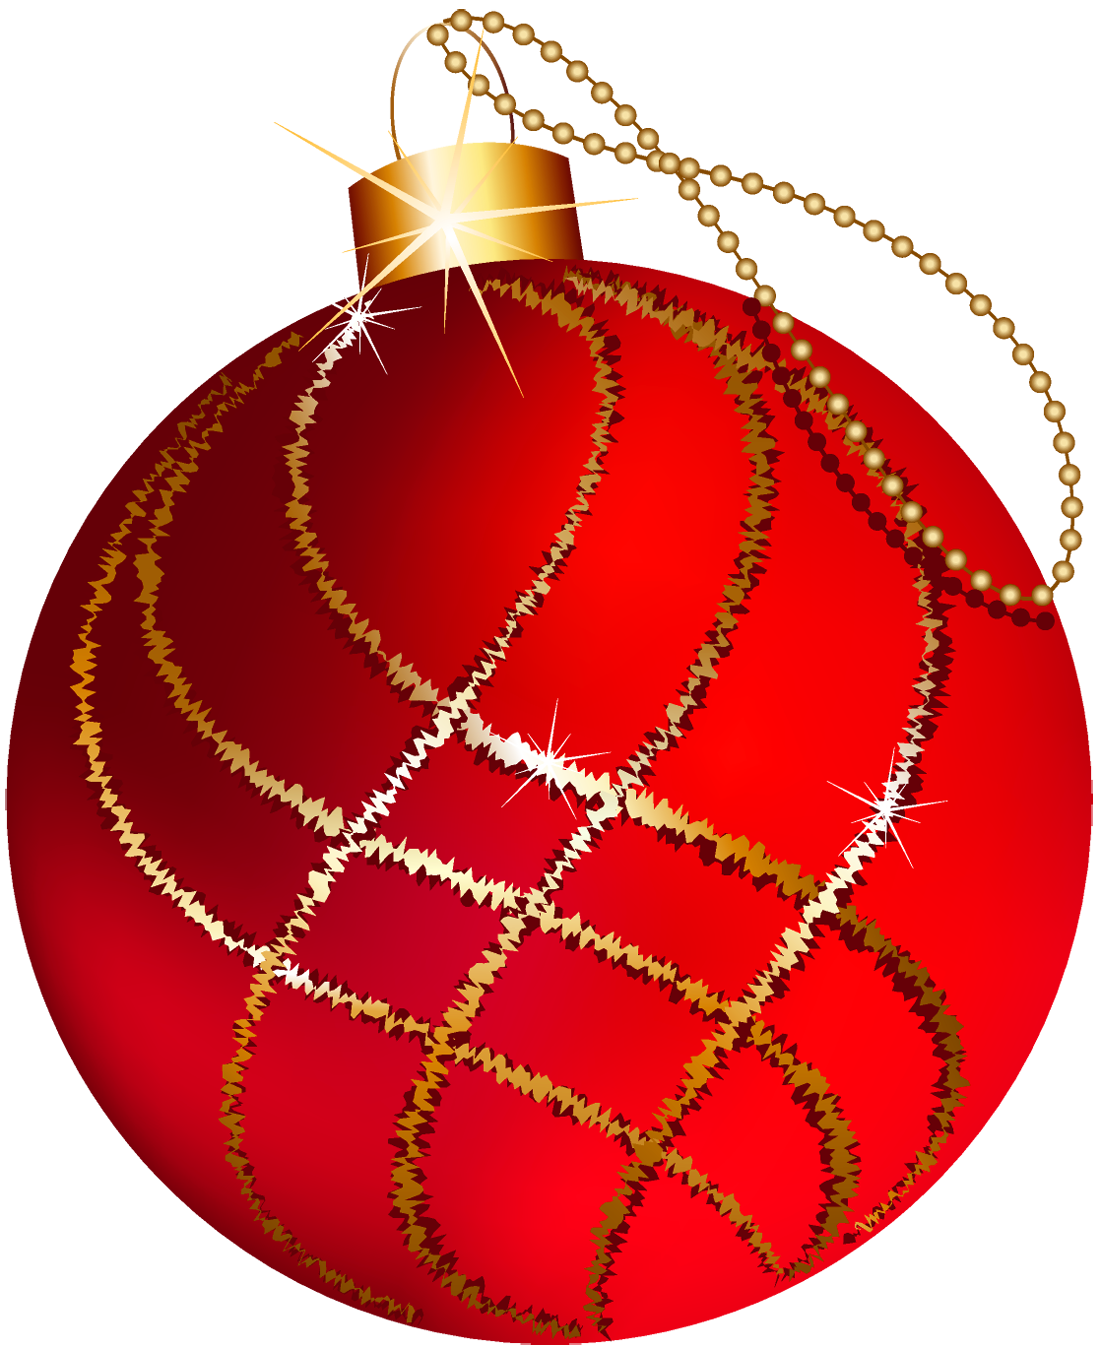 In This Post We Have Provide The Latest Collections Of Gold Christmas Ornaments Png